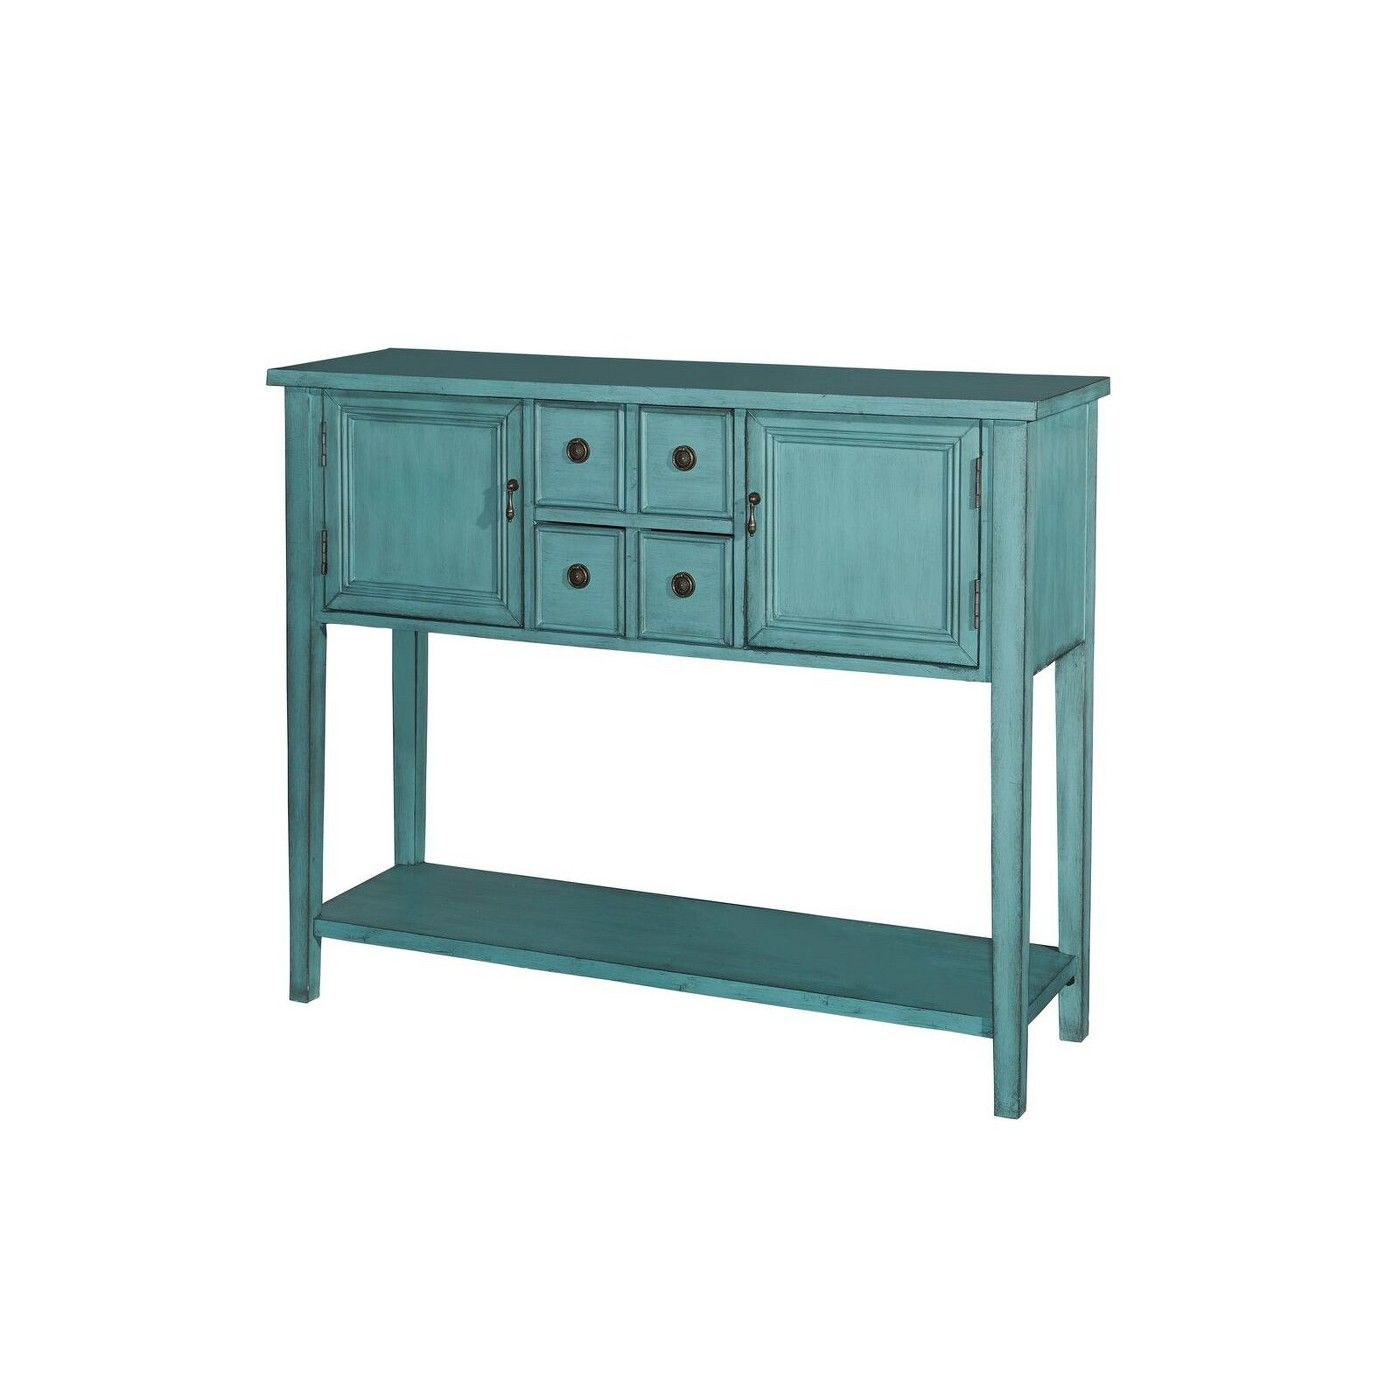 Darby Console Table Blue Powell Company Console Table Antique Console Table Console